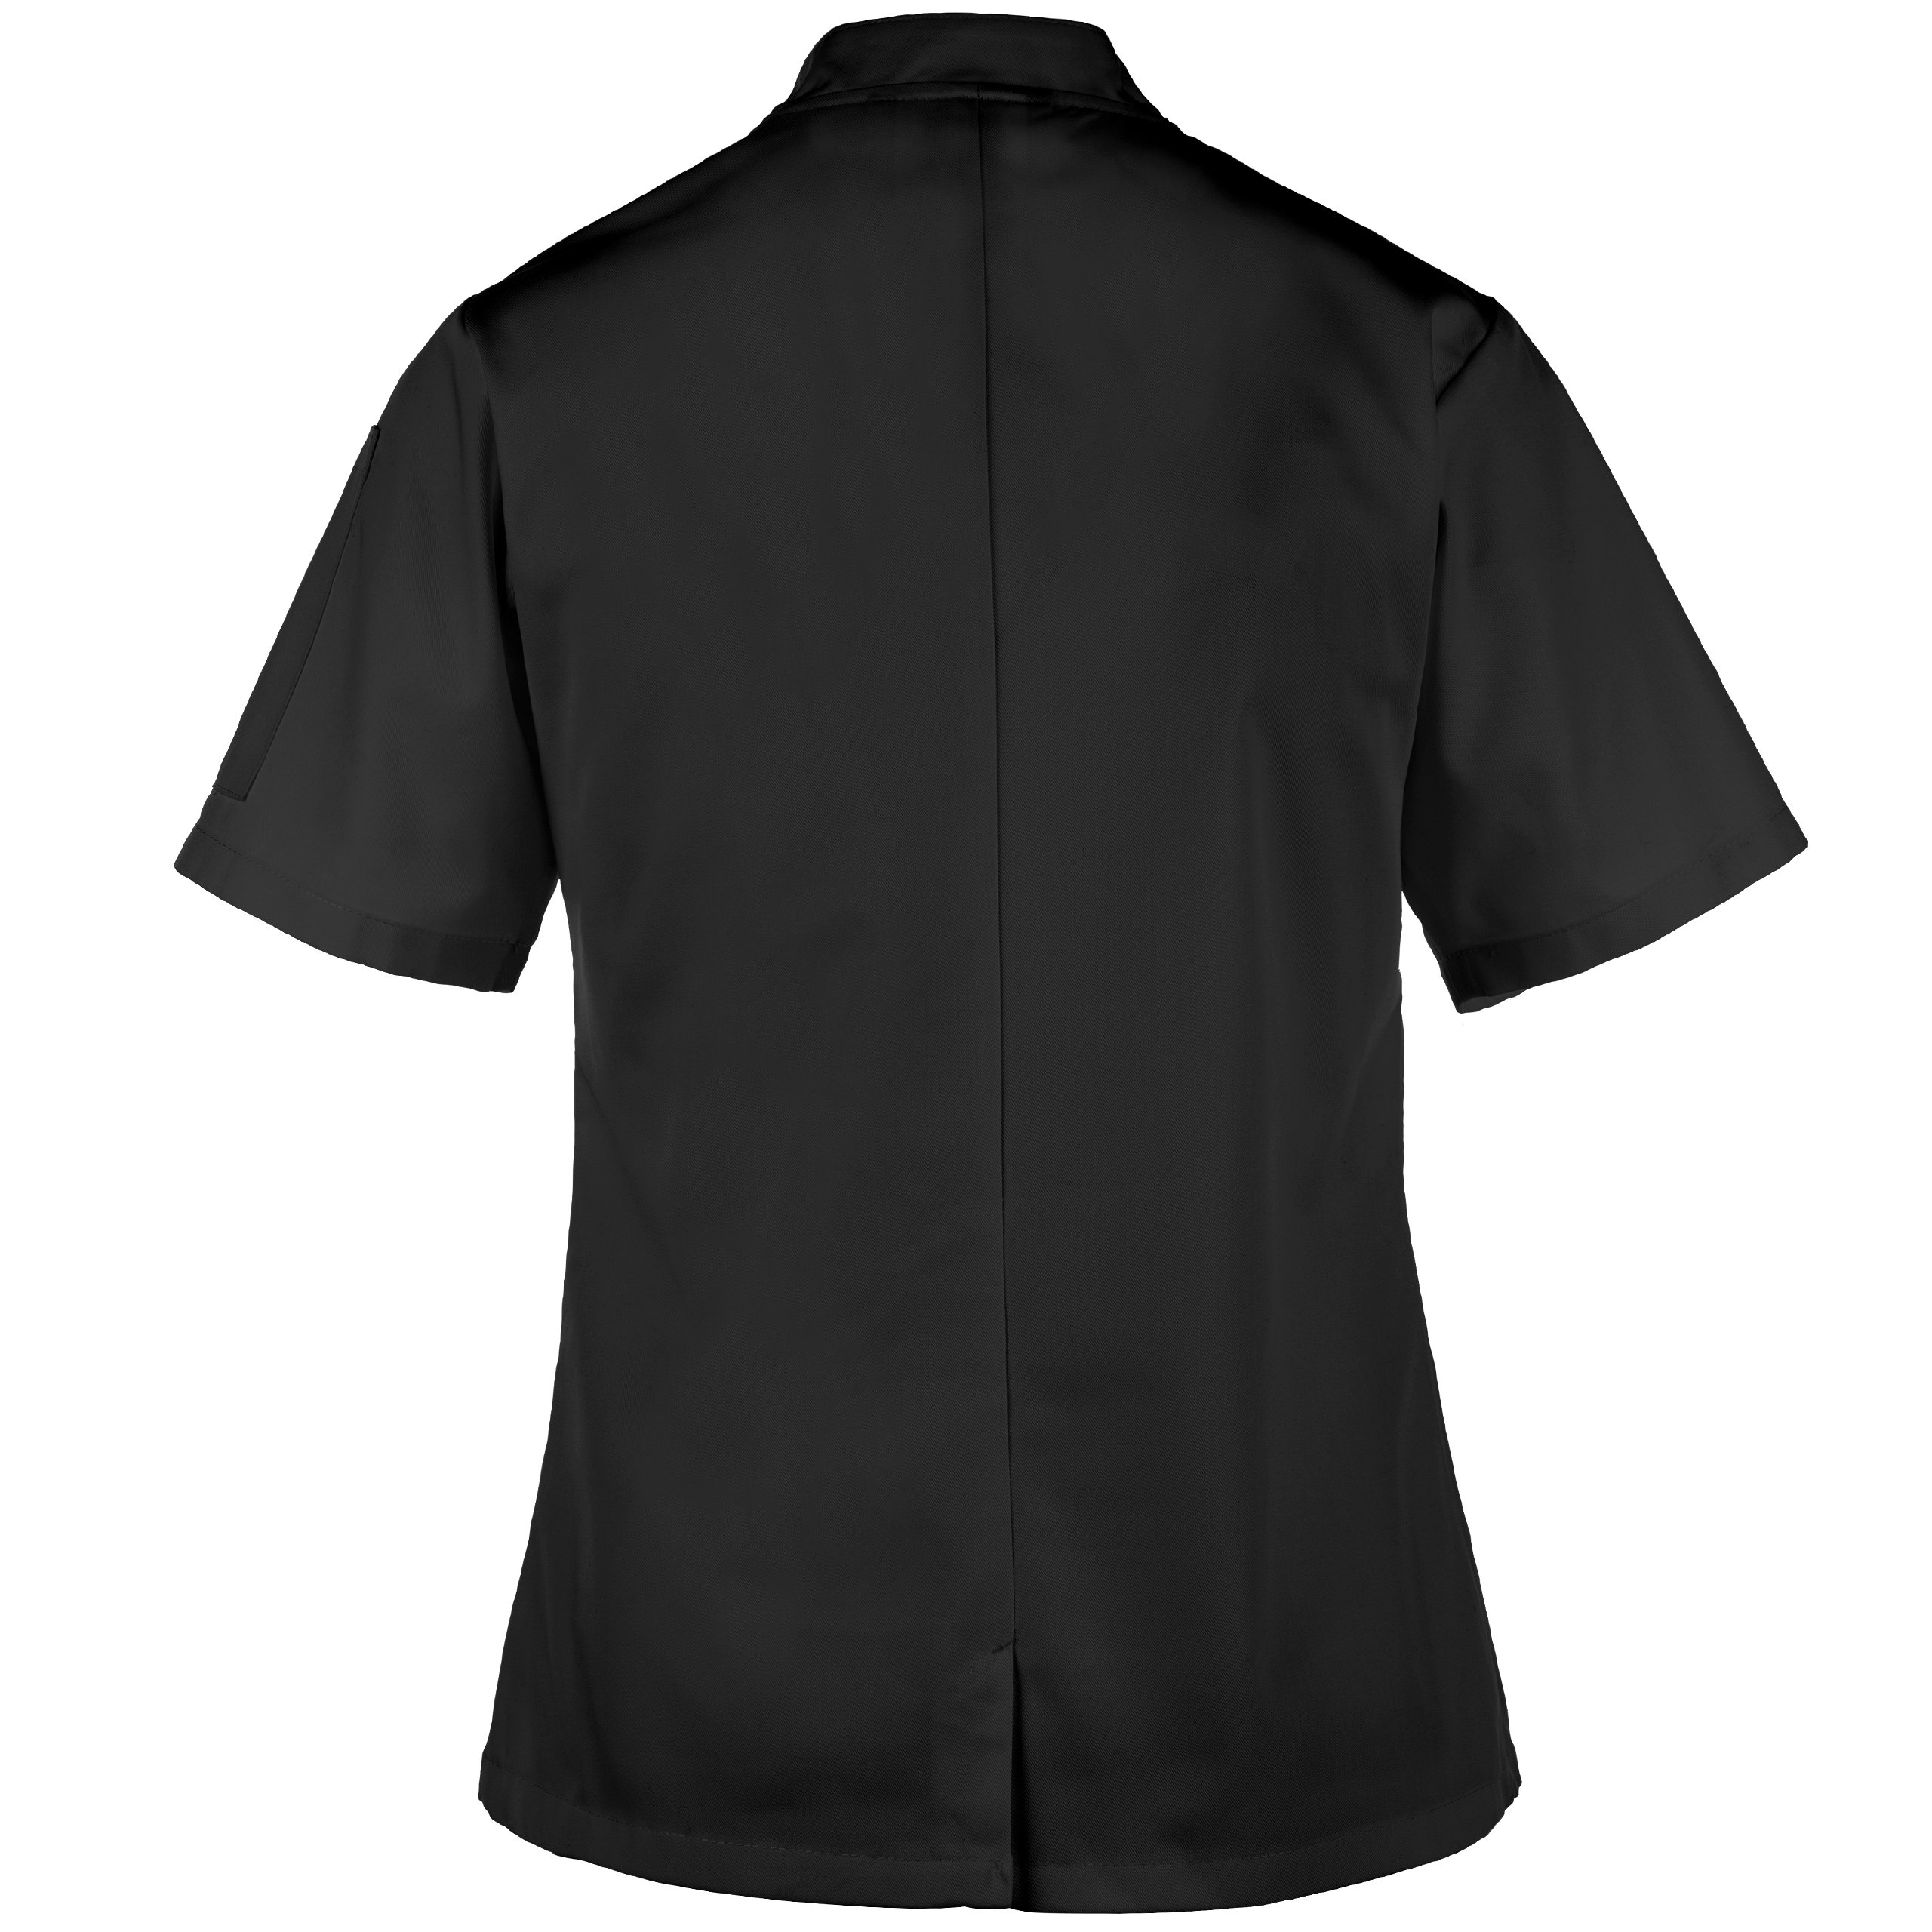 On The Line Women's Short Sleeve Chef Coat/Double Breasted/Plastic Button Reversible Front Closure (S-2X, 2 Colors) (Small, Black) by On The Line (Image #4)